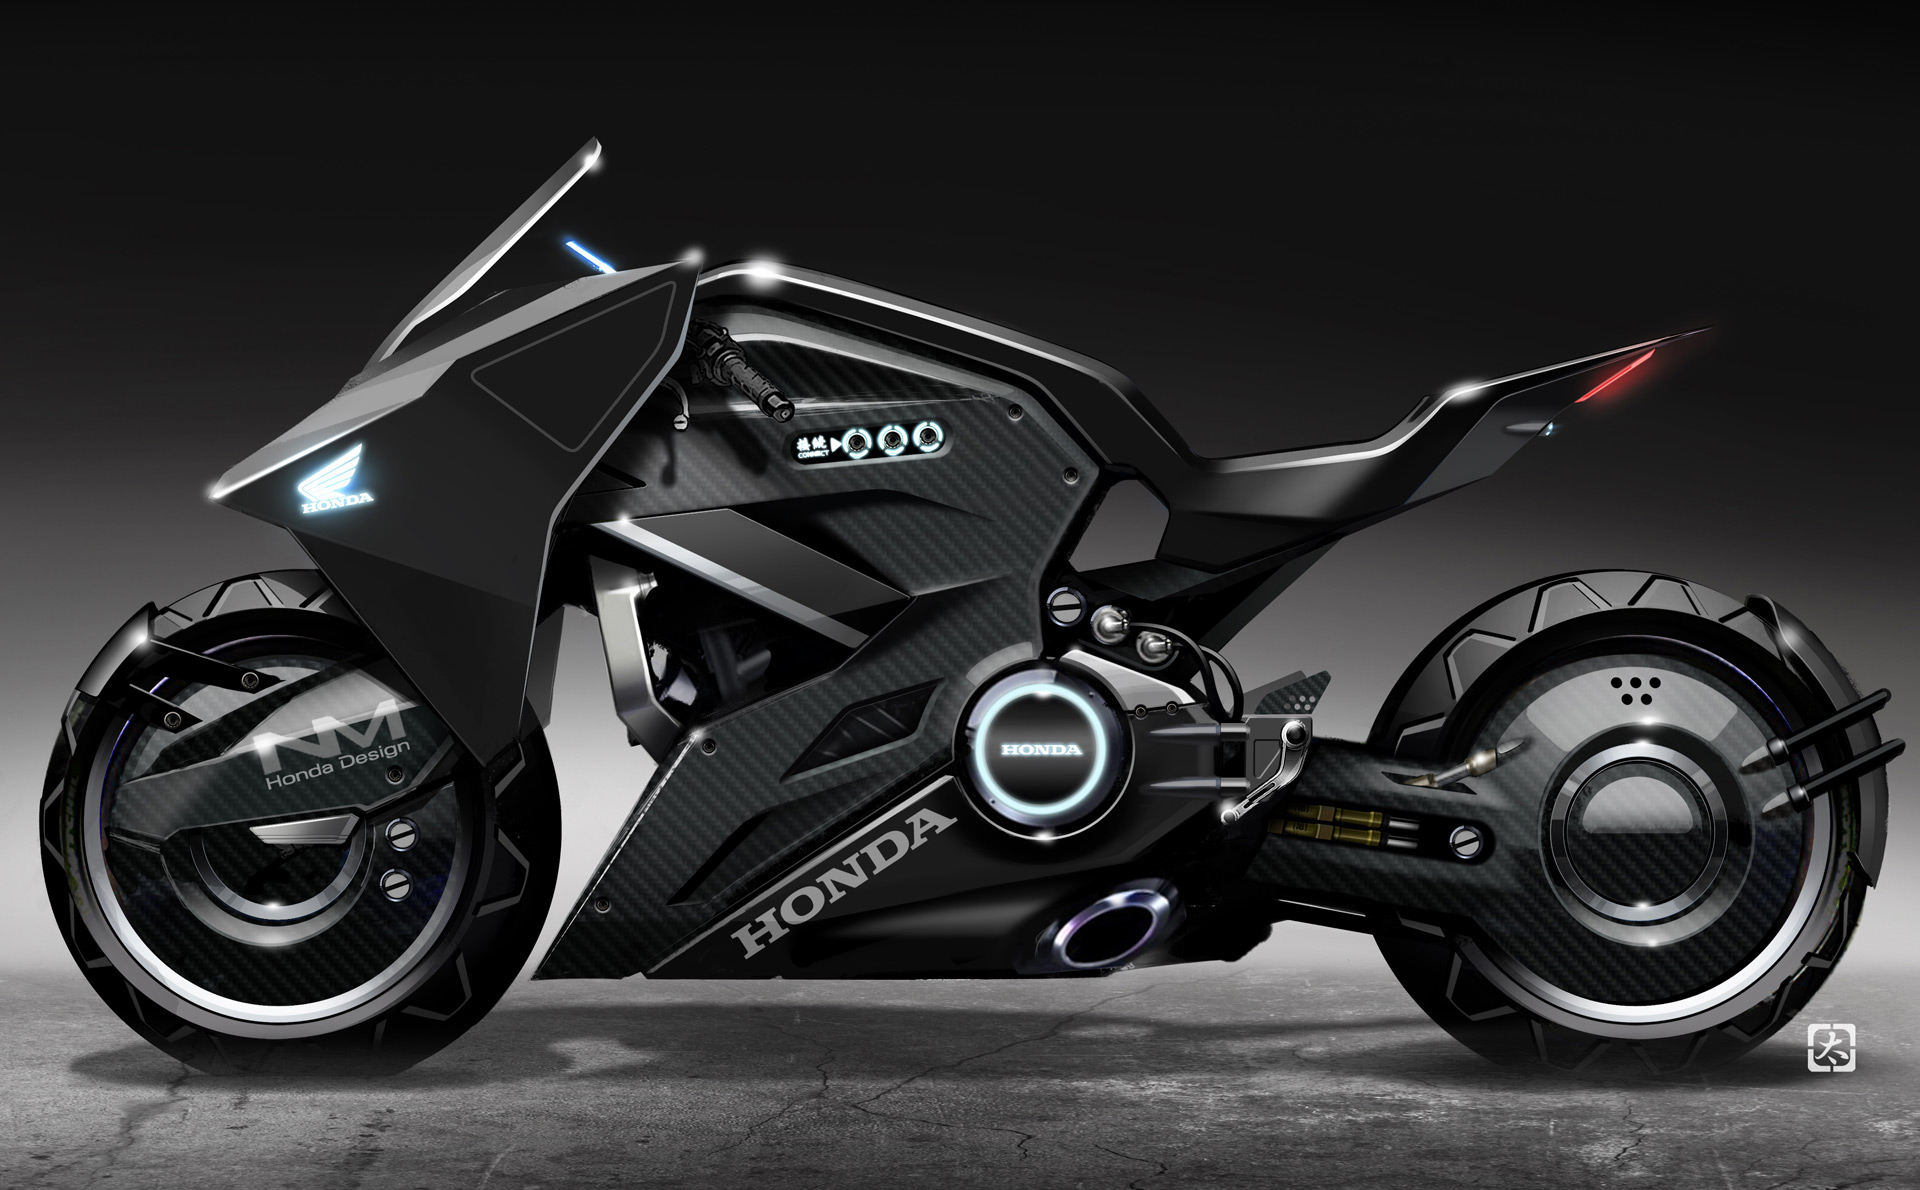 Futuristic Honda Motorcycle To Star In Ghost In The Shell